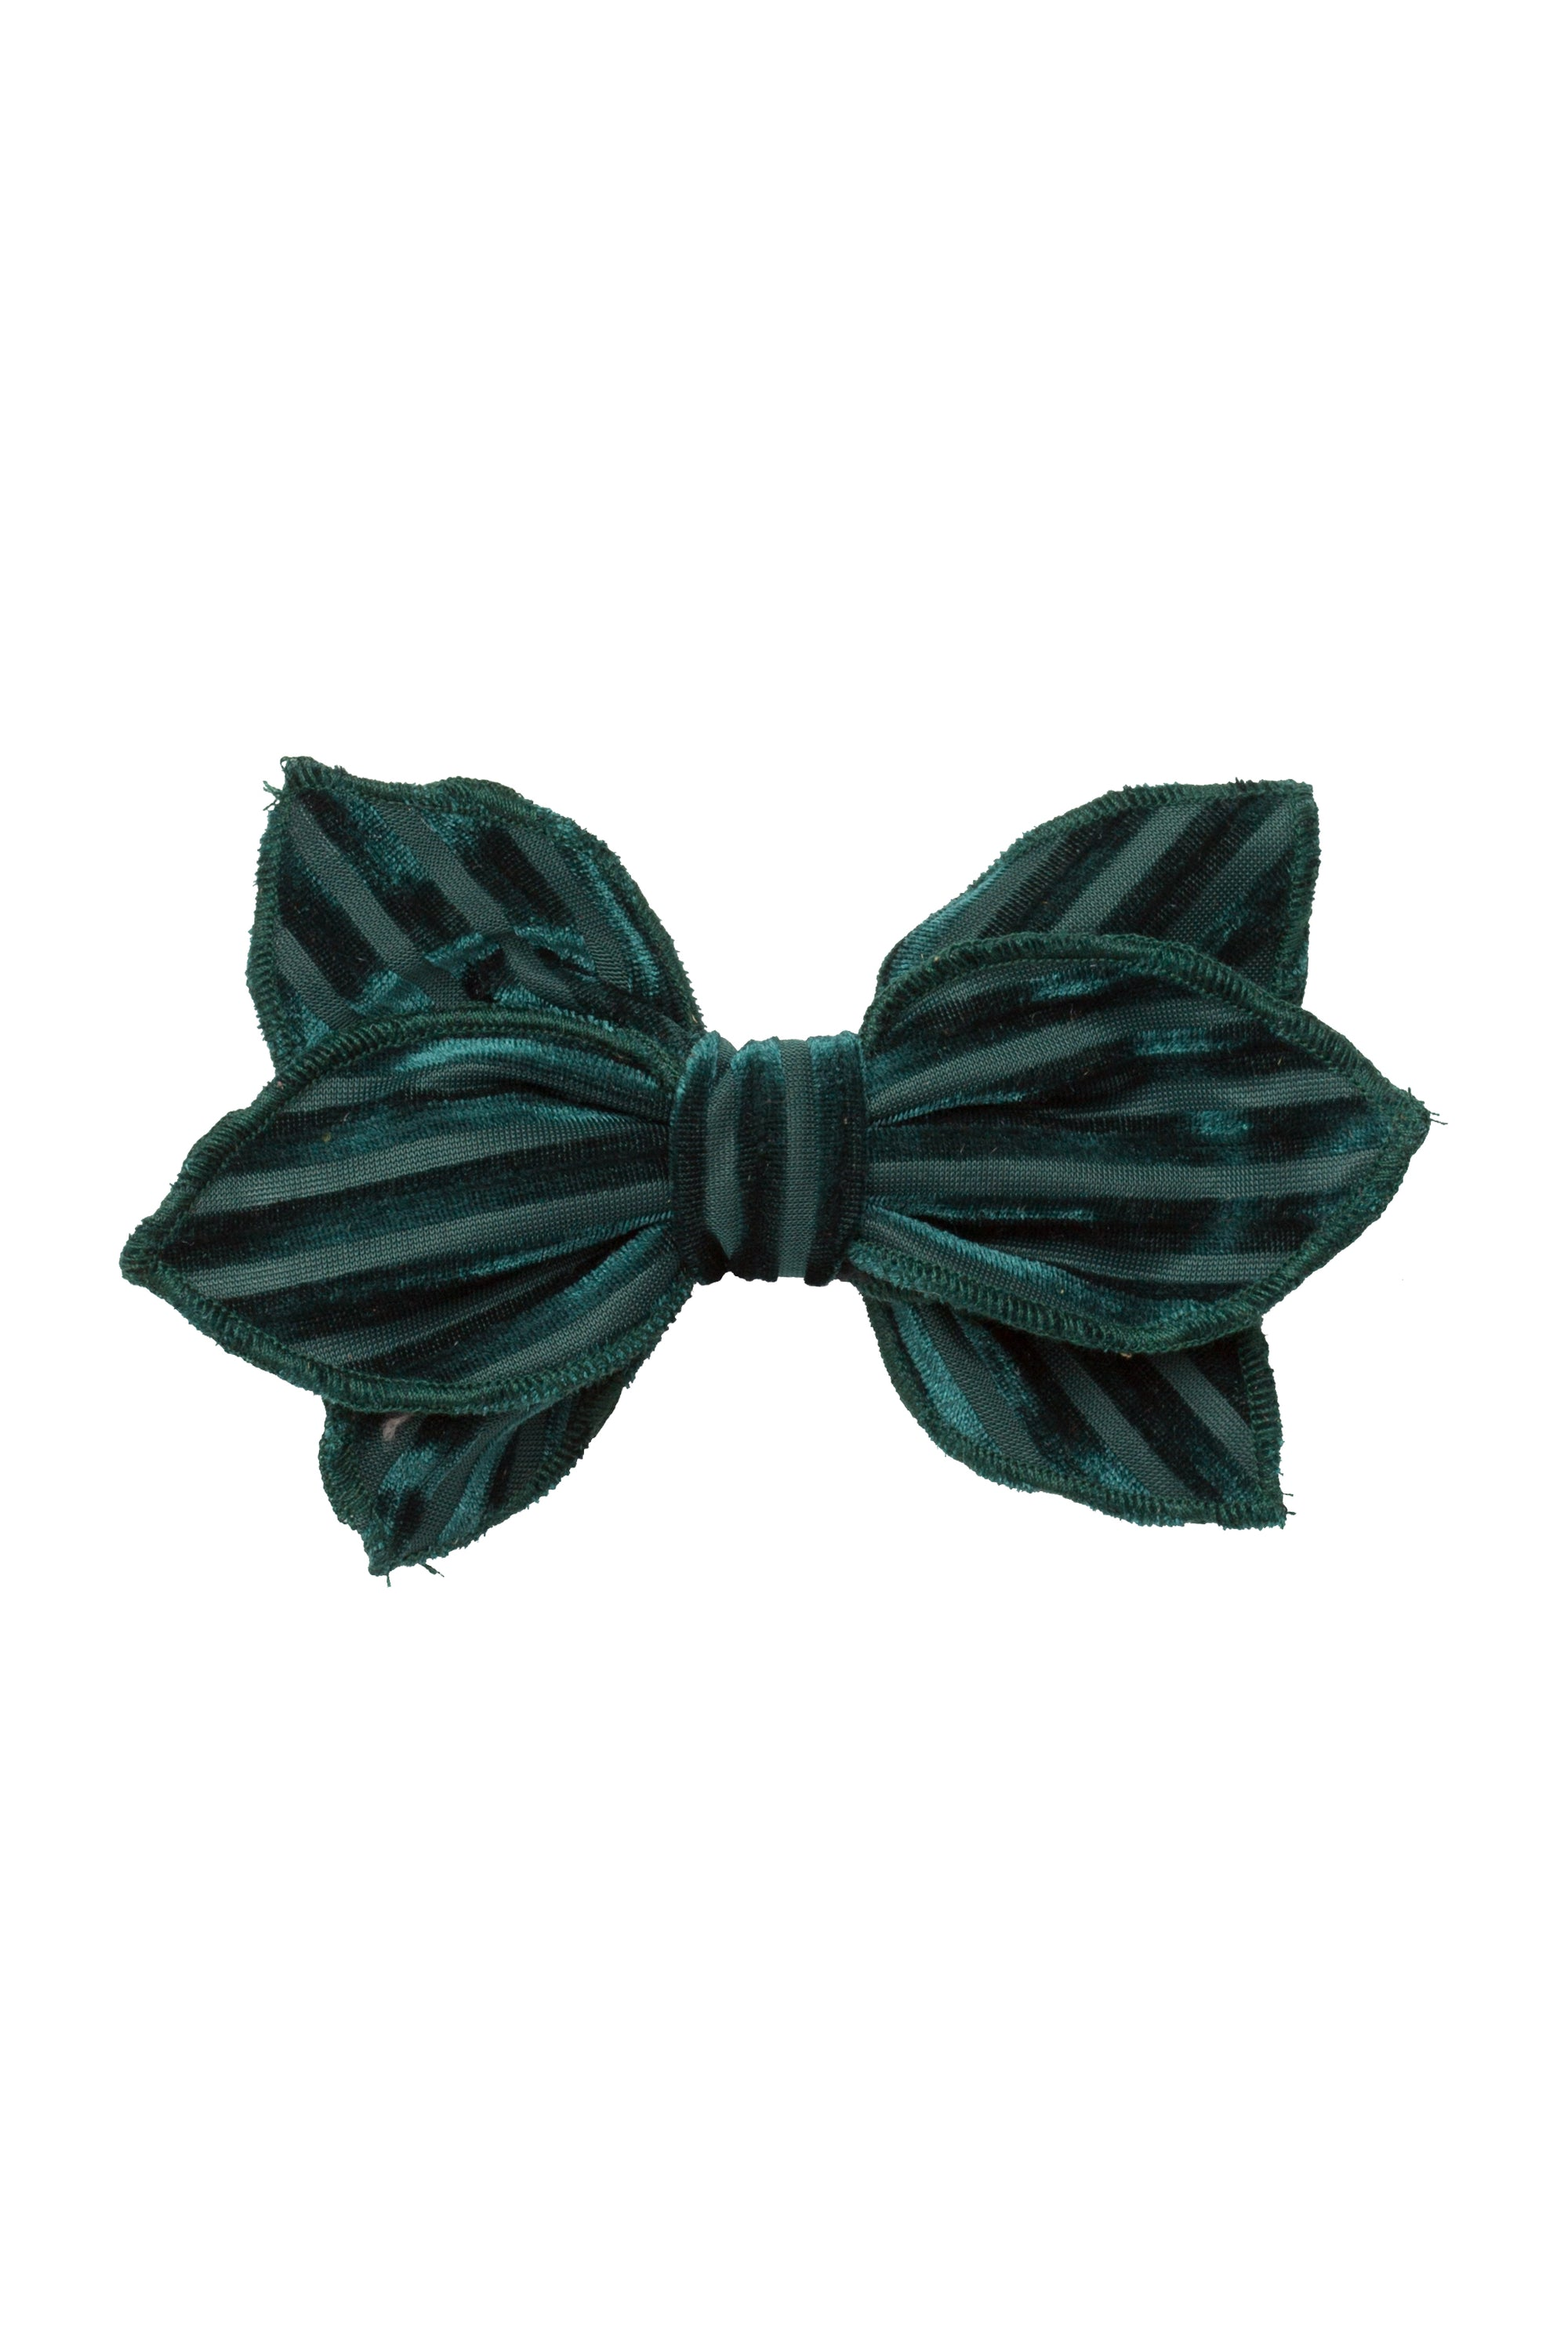 Growing Orchid Clip - Hunter Green Velvet Stripe - PROJECT 6, modest fashion